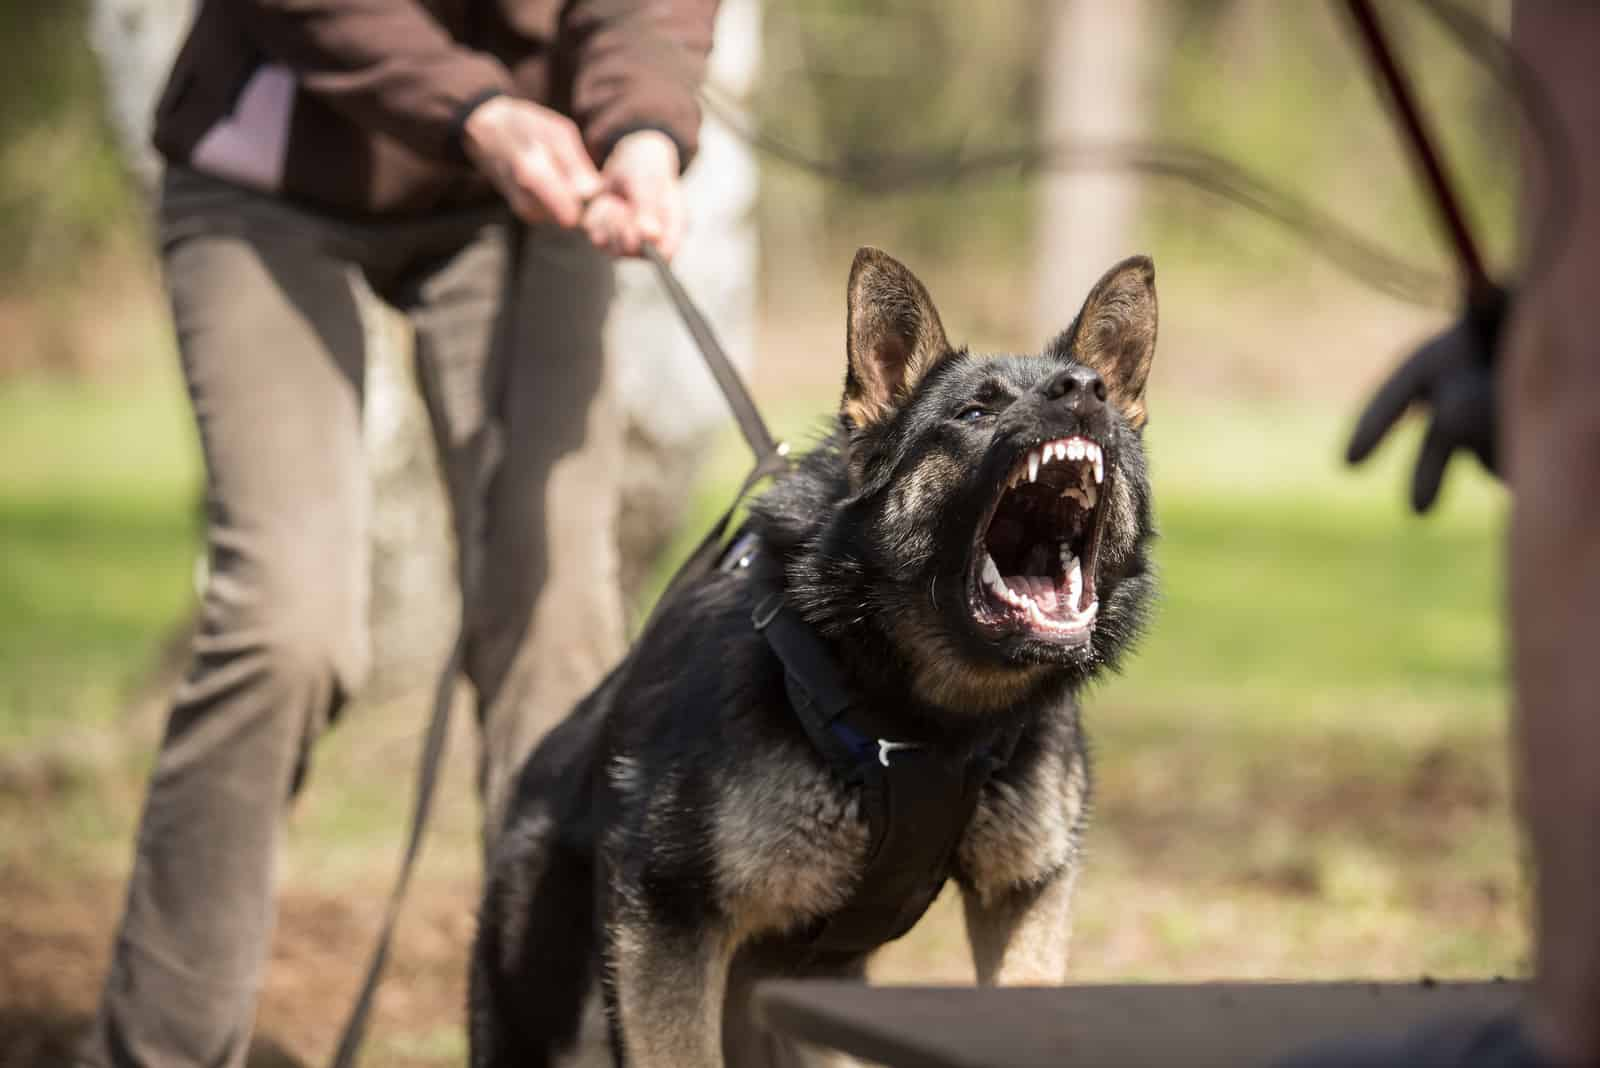 the owner trains an aggressive dog